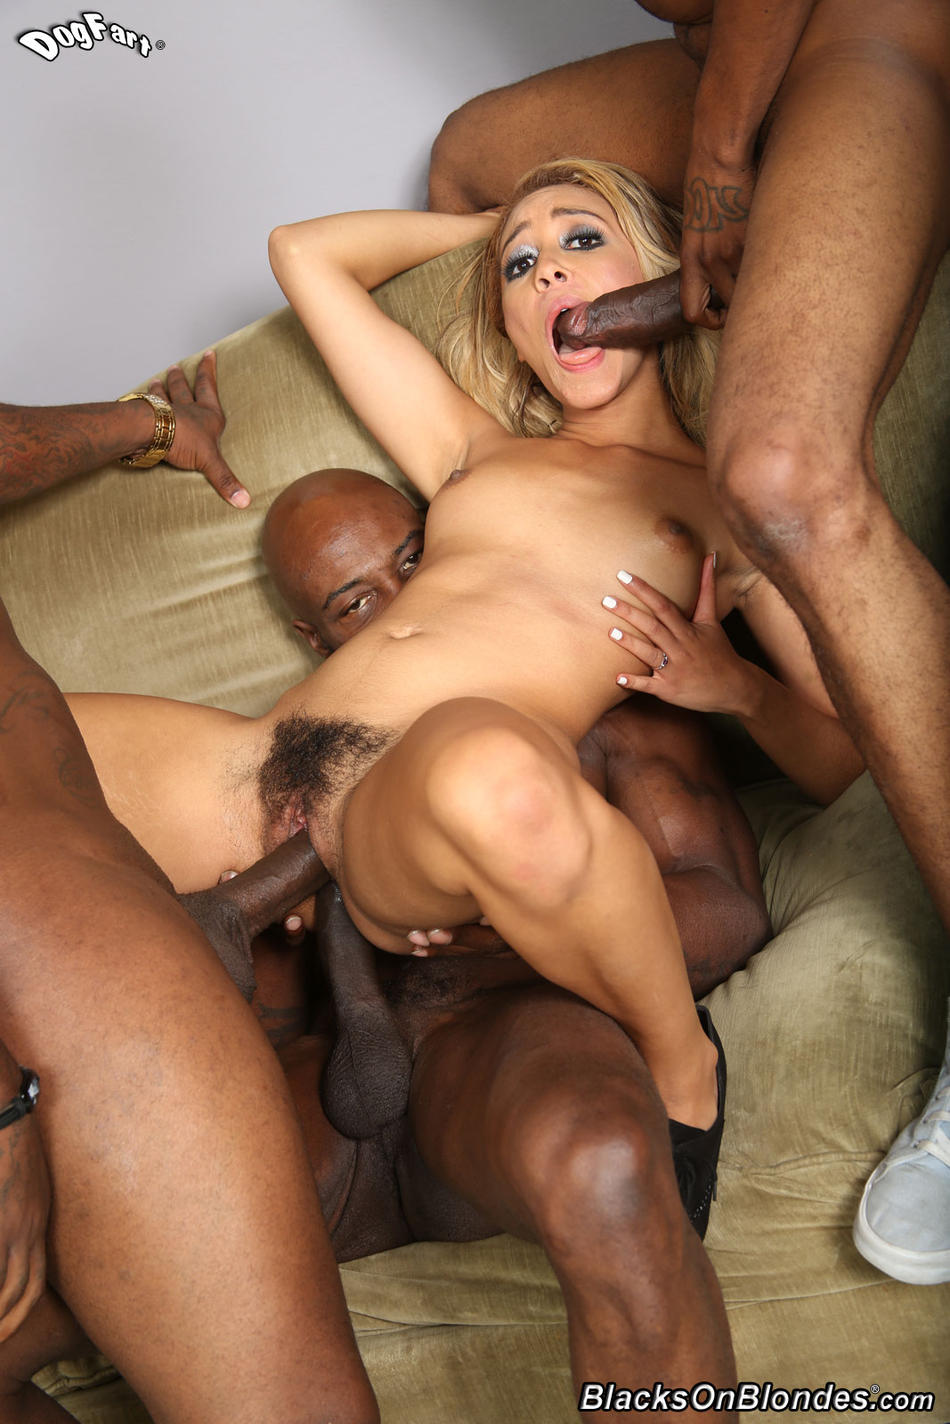 xxx interracial porn tumblr hairy blonde interracial anal blonde photo